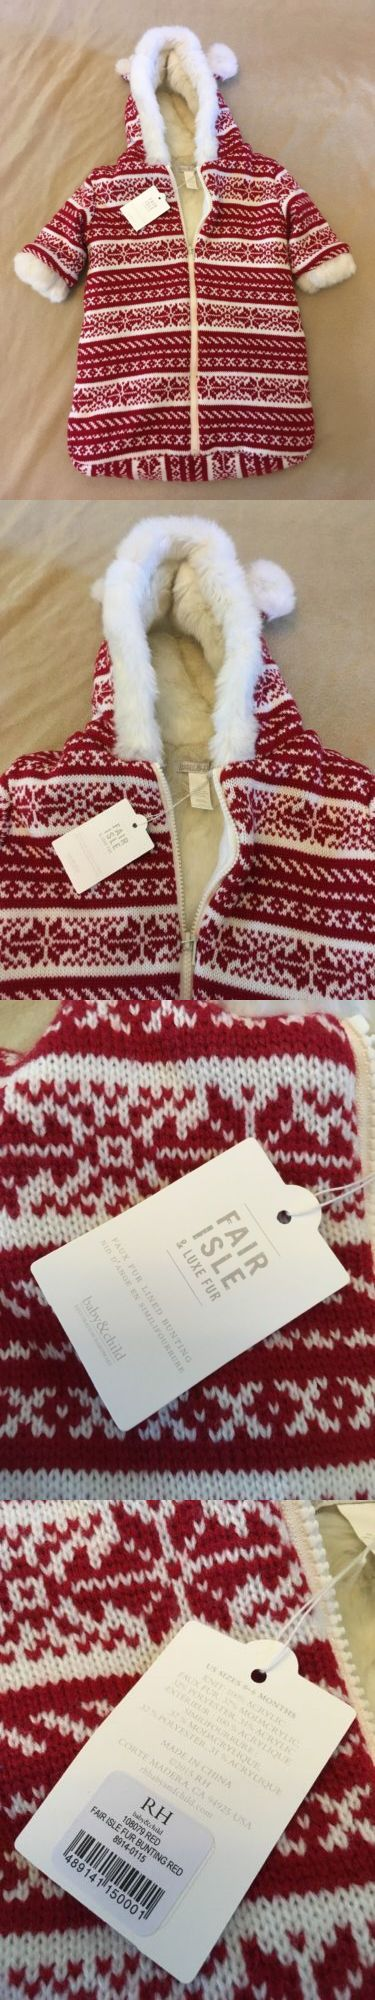 Outerwear 163399: Restoration Hardware Baby Bunting Fair Isle Baby And Child Red Sweater Ears Nwt -> BUY IT NOW ONLY: $32.36 on eBay!